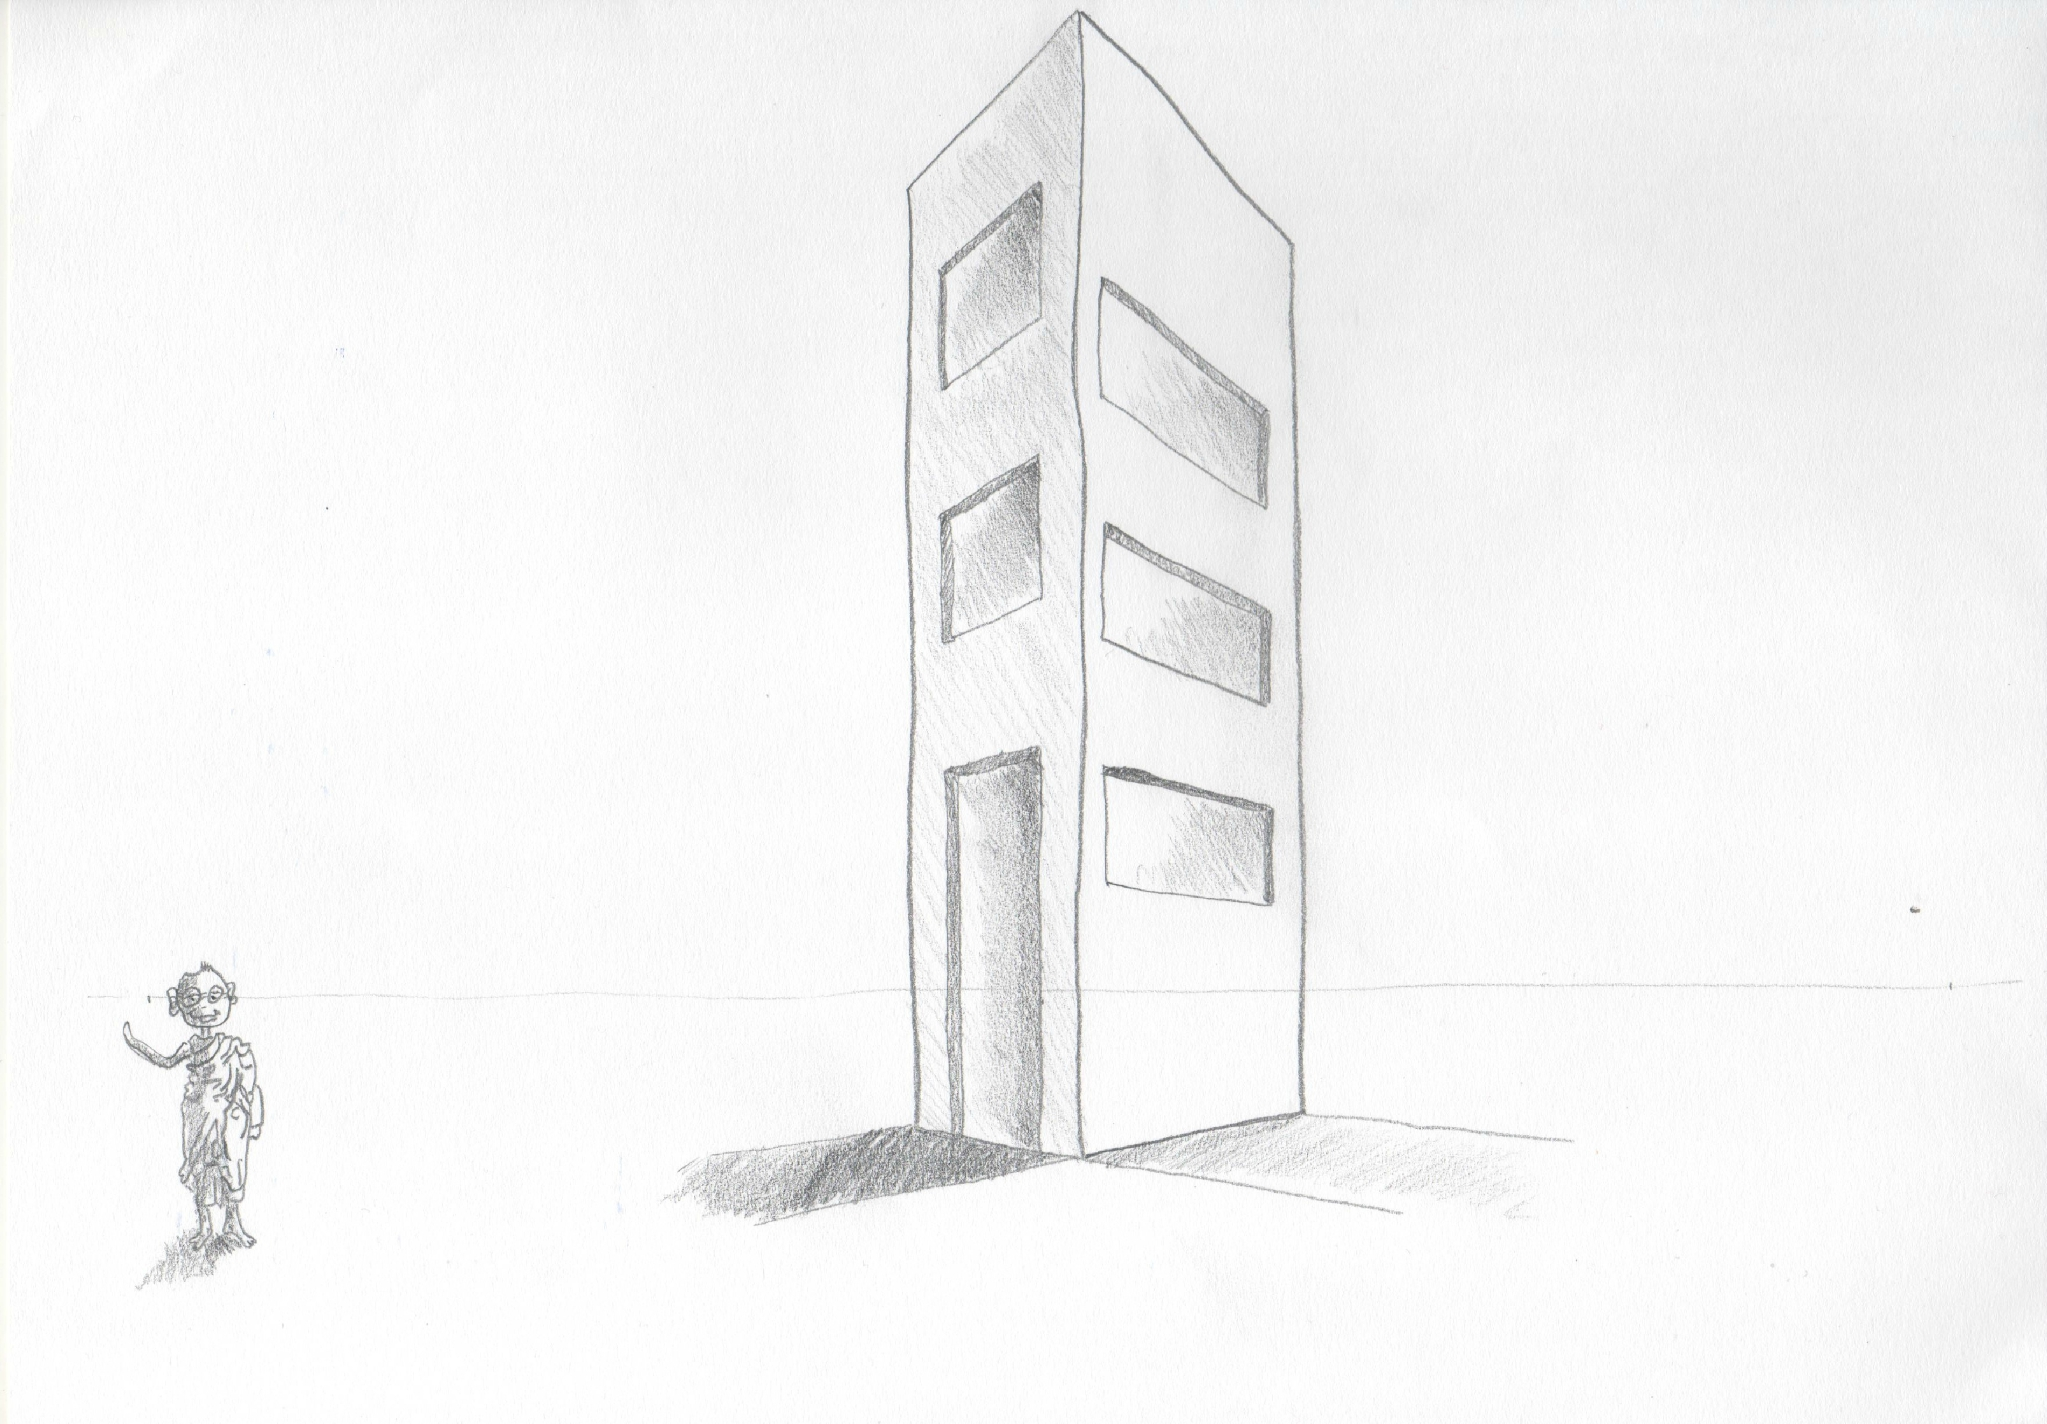 Dessin Immeuble En Perspective Devoir N1 Quotinitiation Au Dessin De Perspective